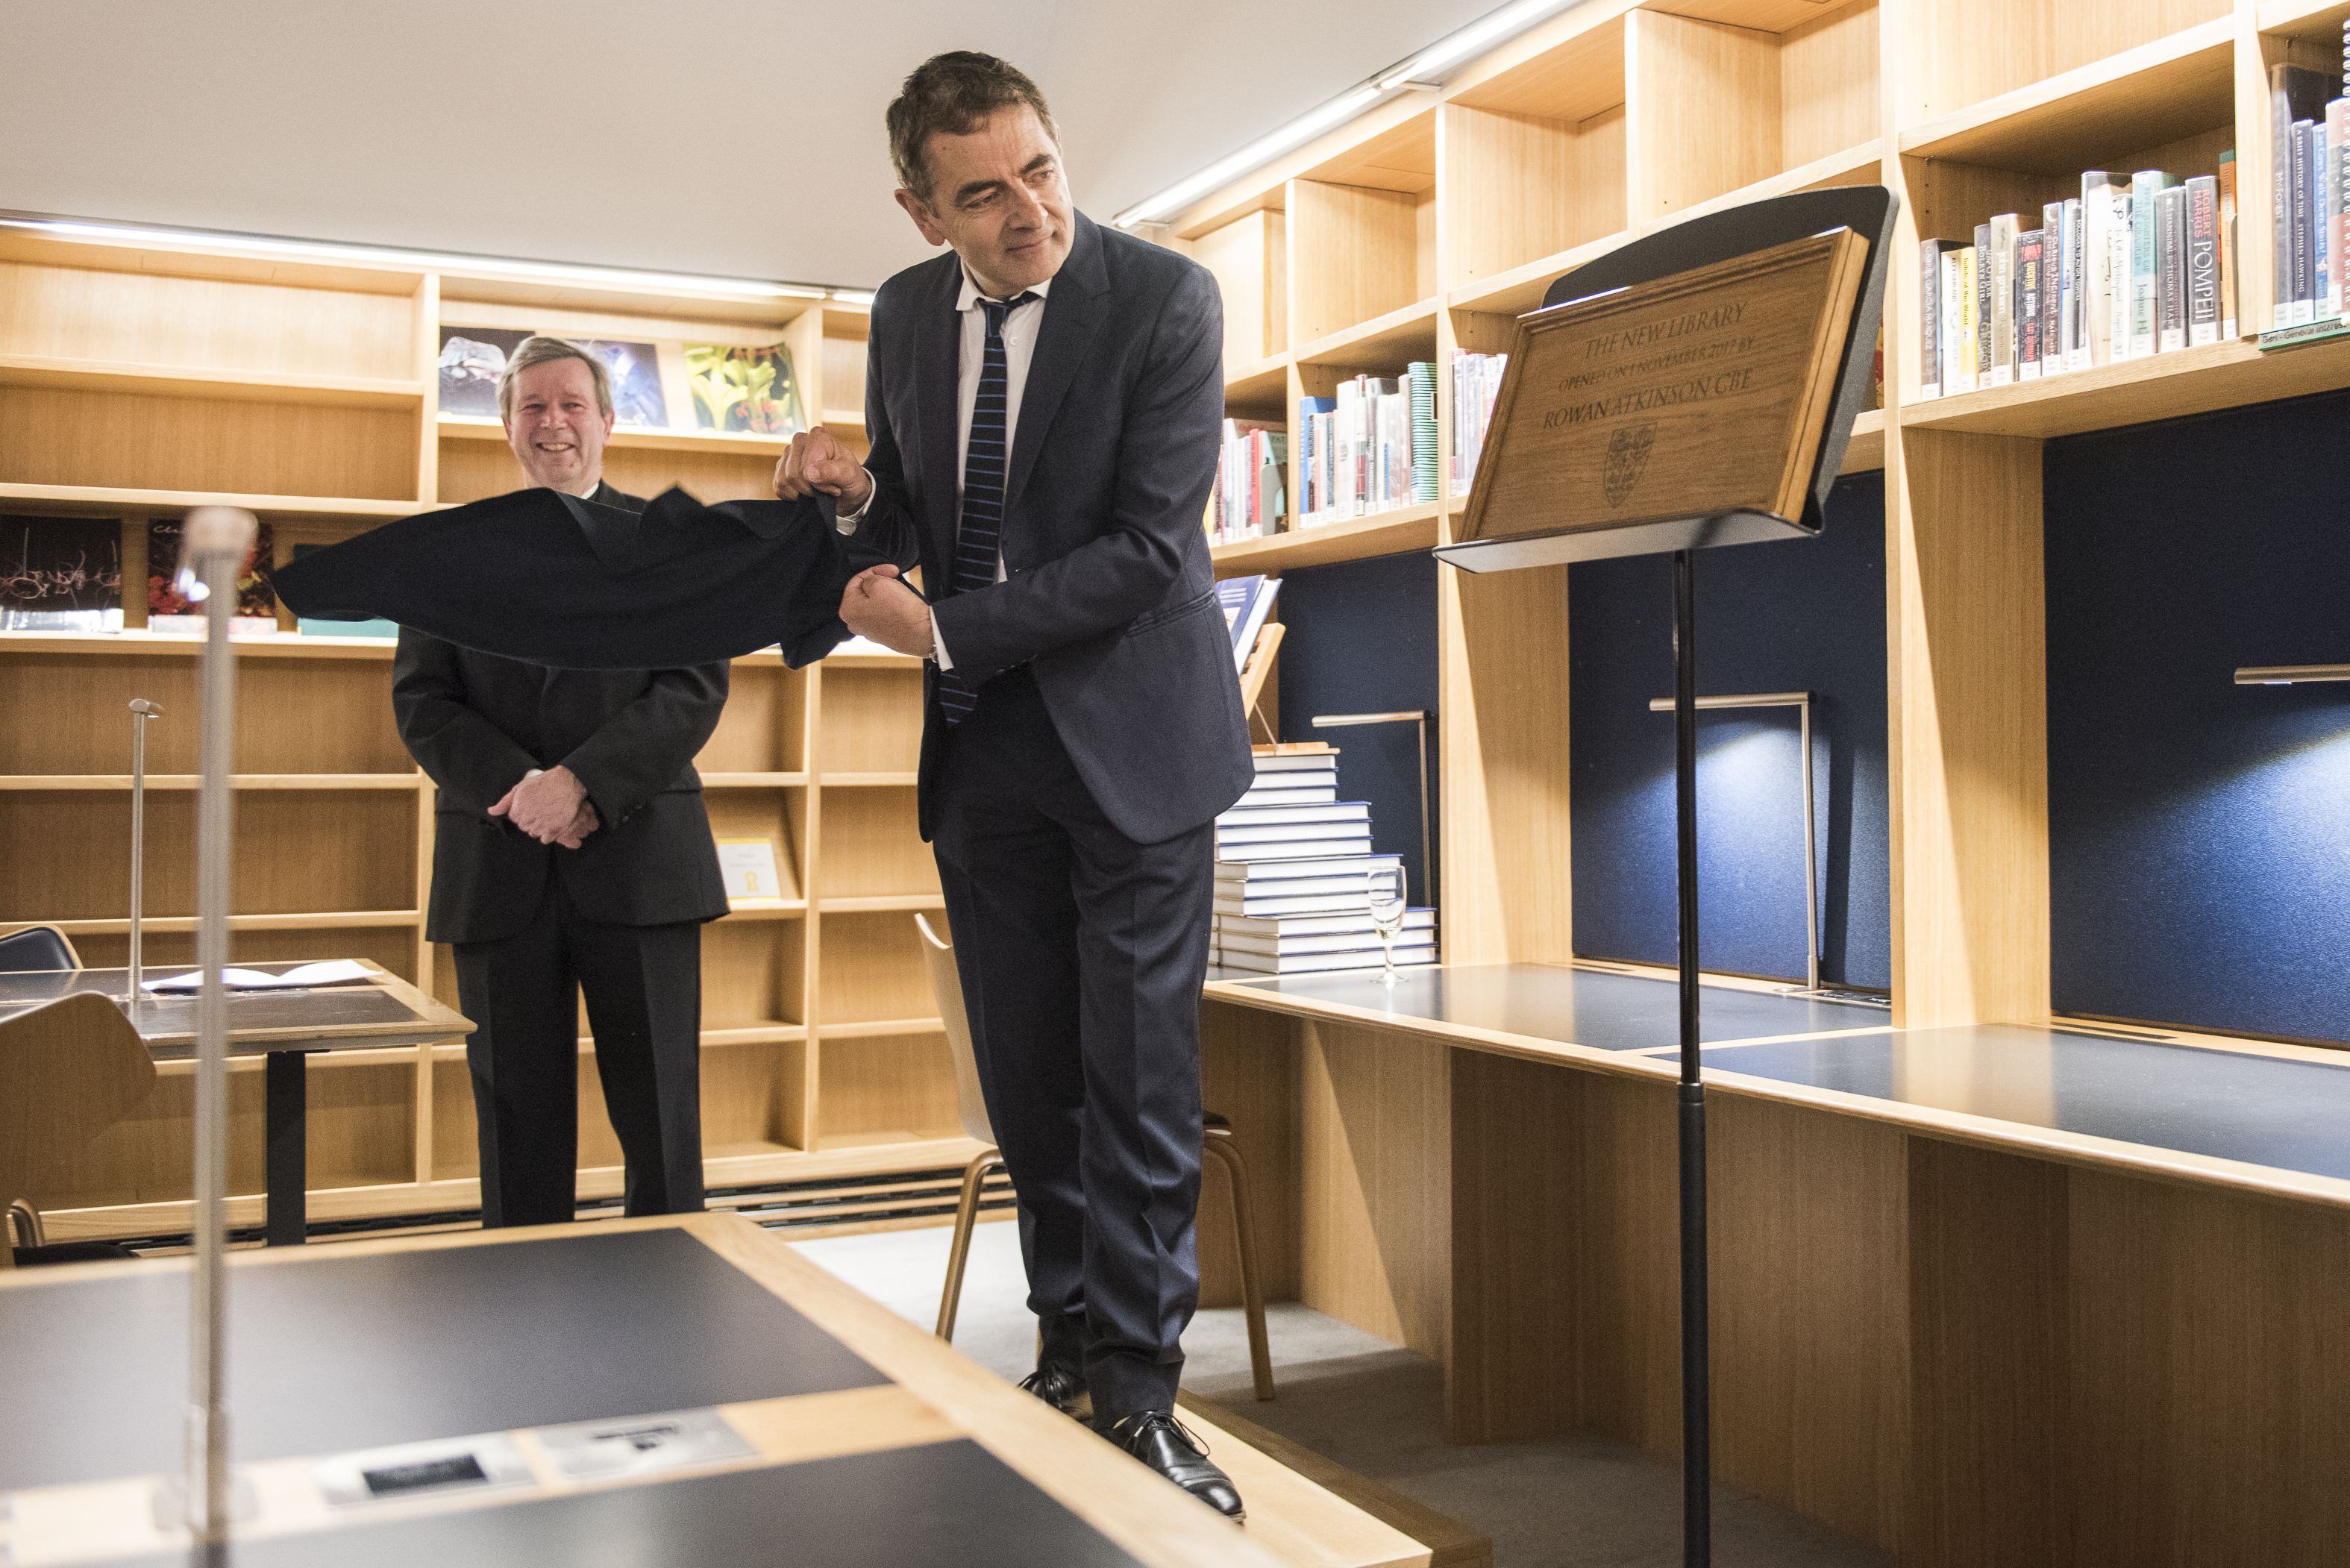 Opening of the New Library at Queen's by Rowan Atkinson